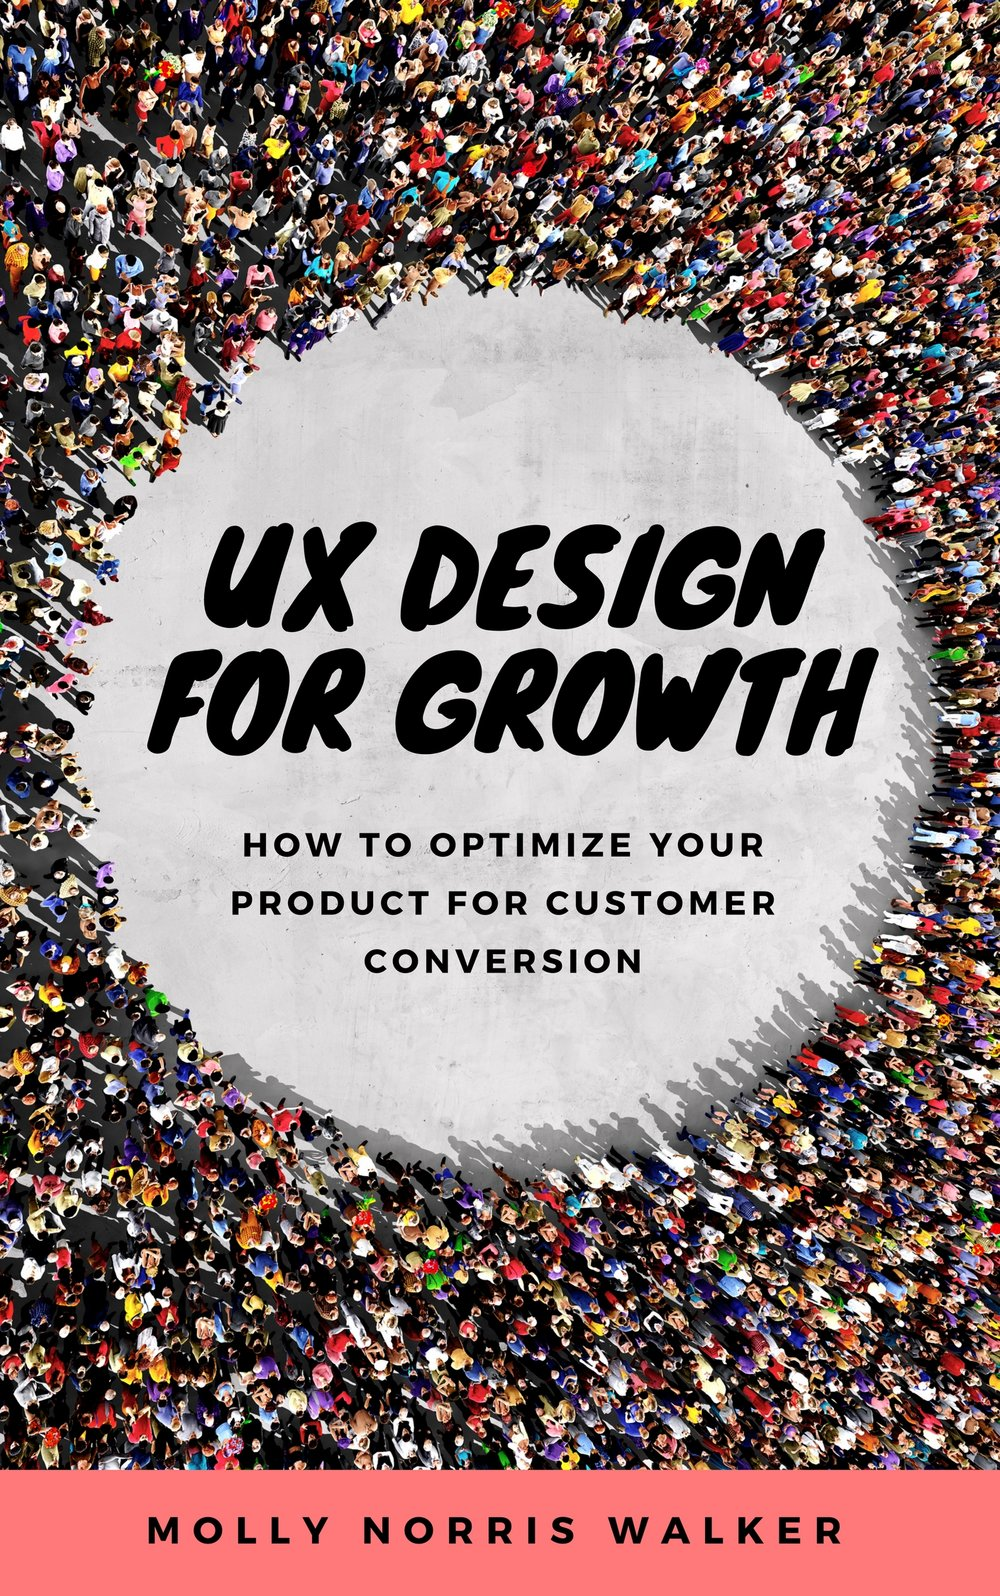 UX Design for Growth